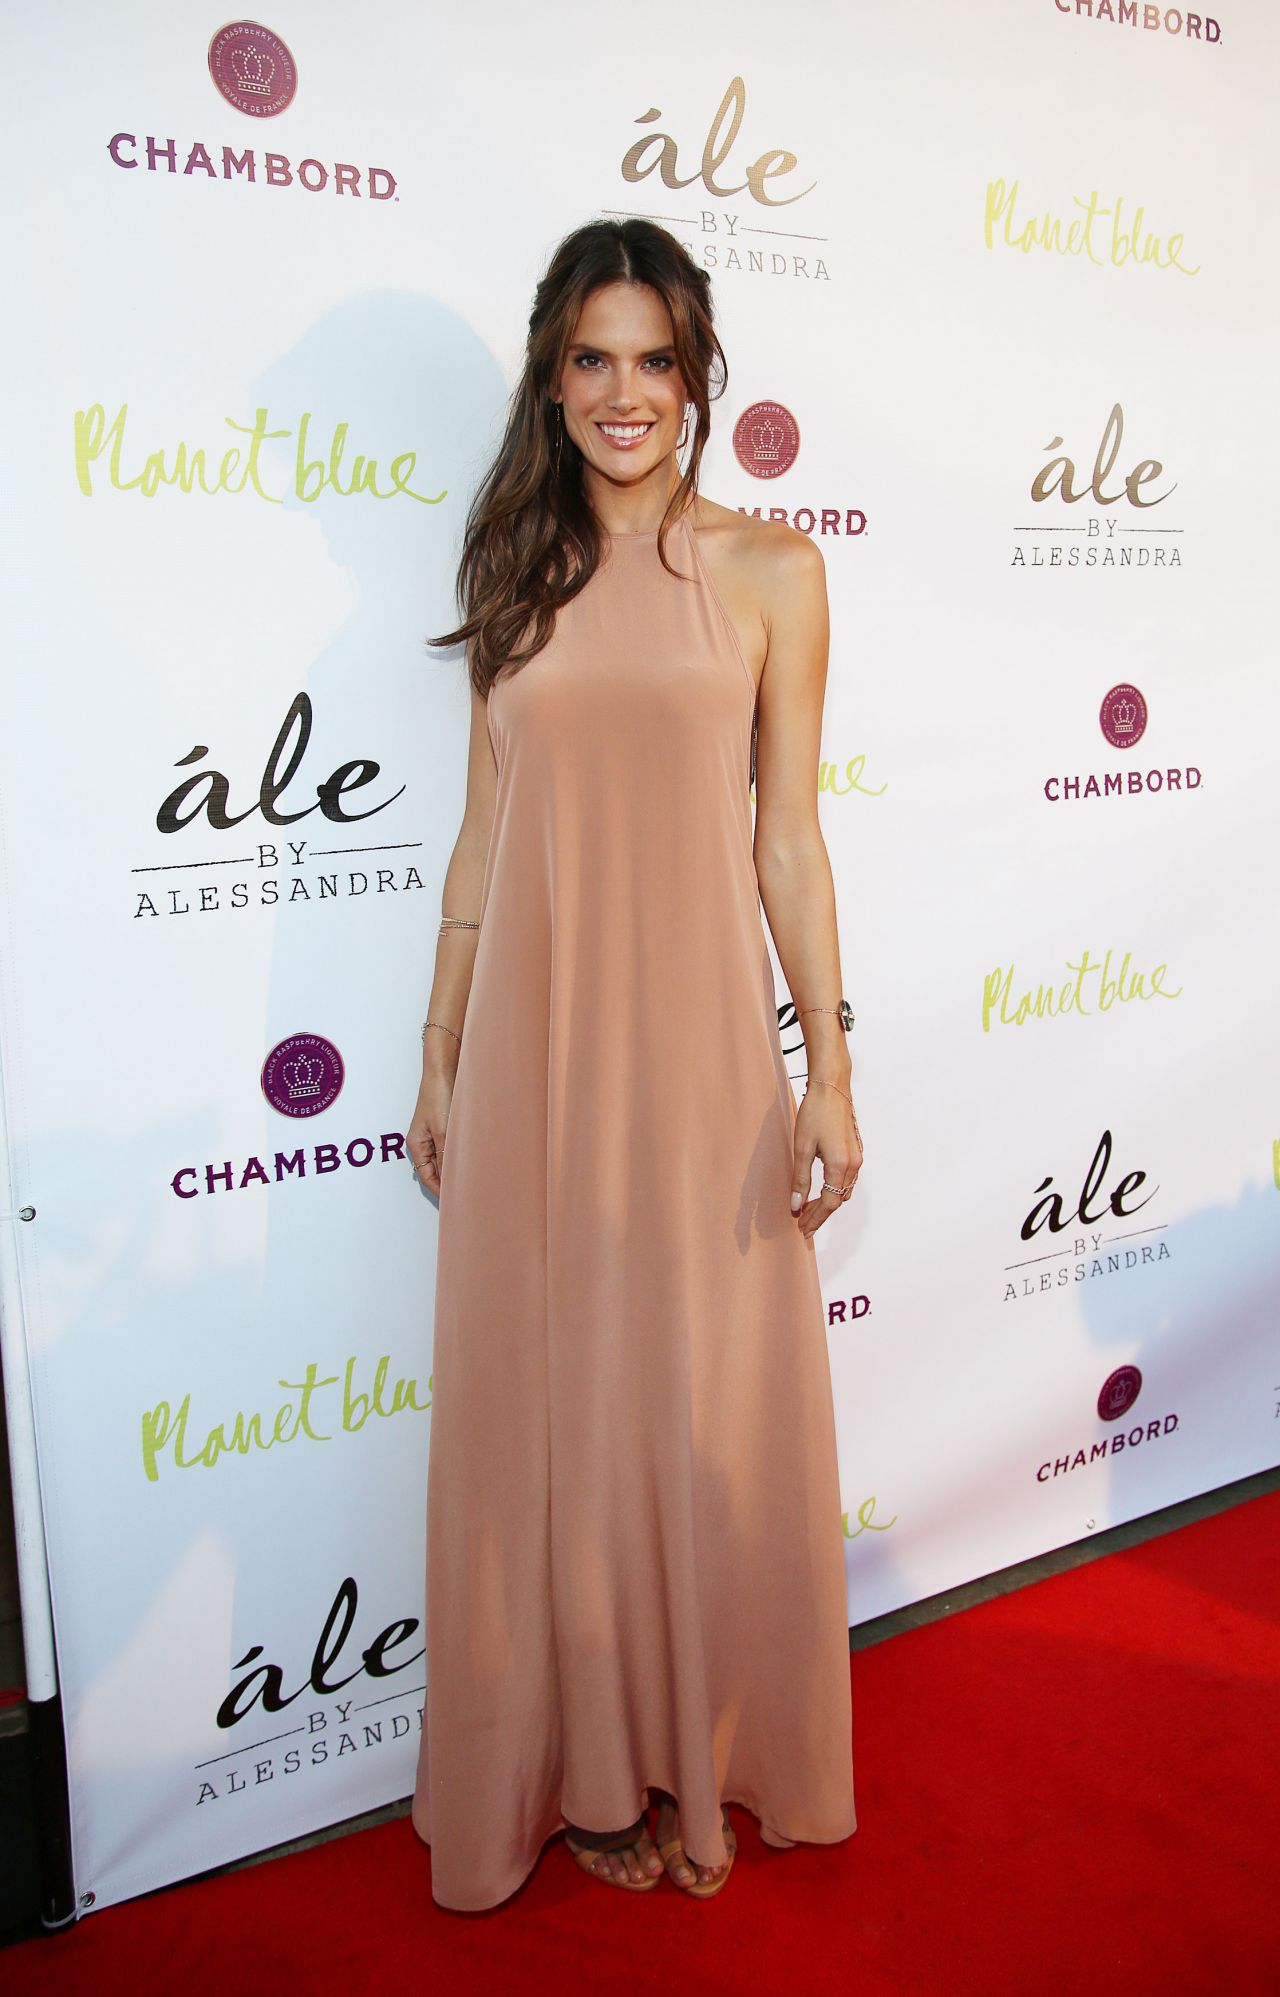 Alessandra Ambrosio - Ale by Alessandra Launch Event - March 2014